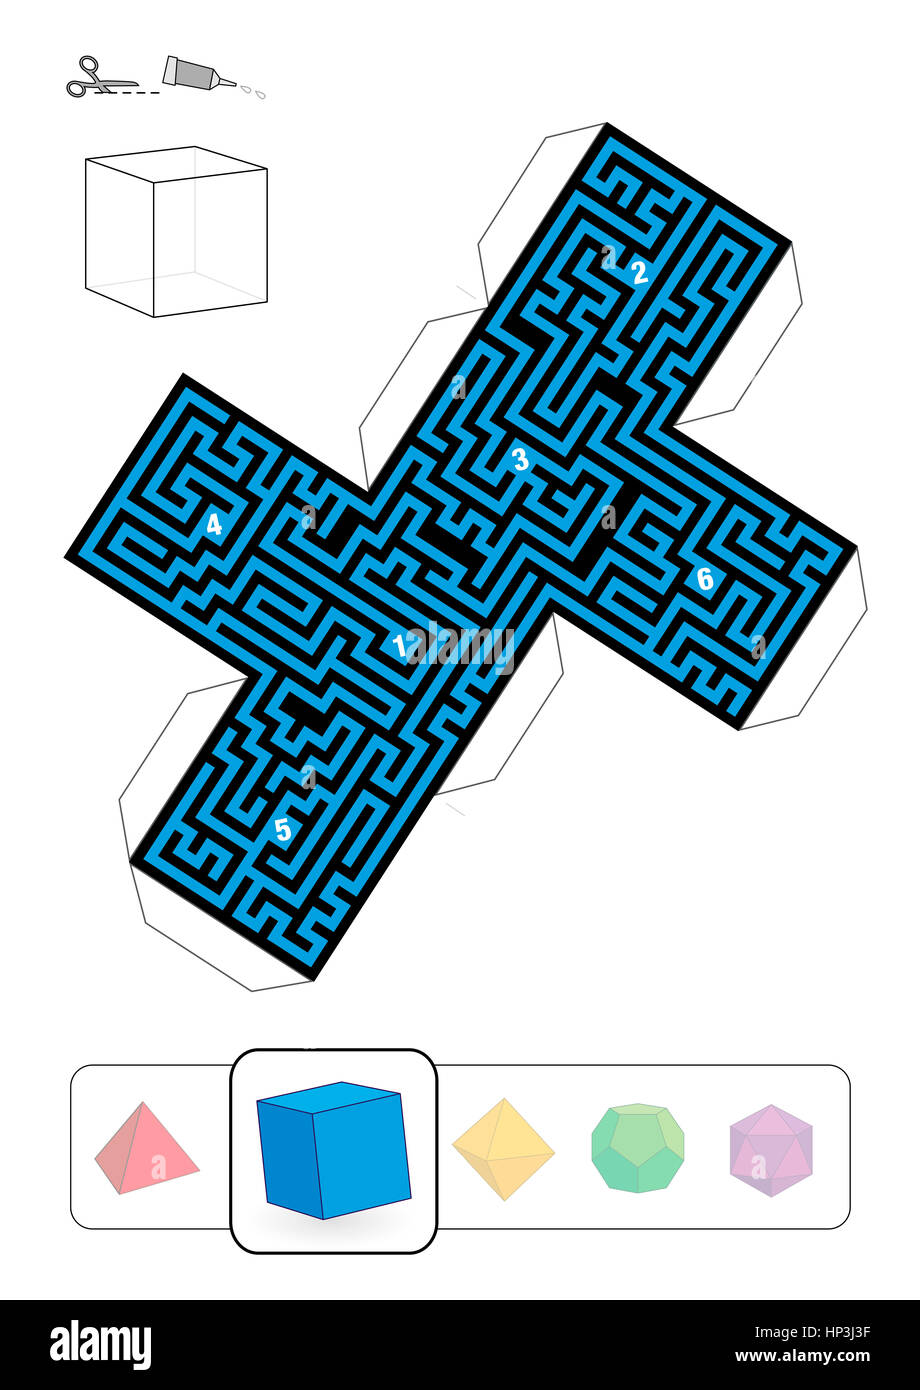 HEXAHEDRON MAZE - template of one of five platonic solid labyrinths - Print on heavy paper, cut it out, make a 3d - Stock Image